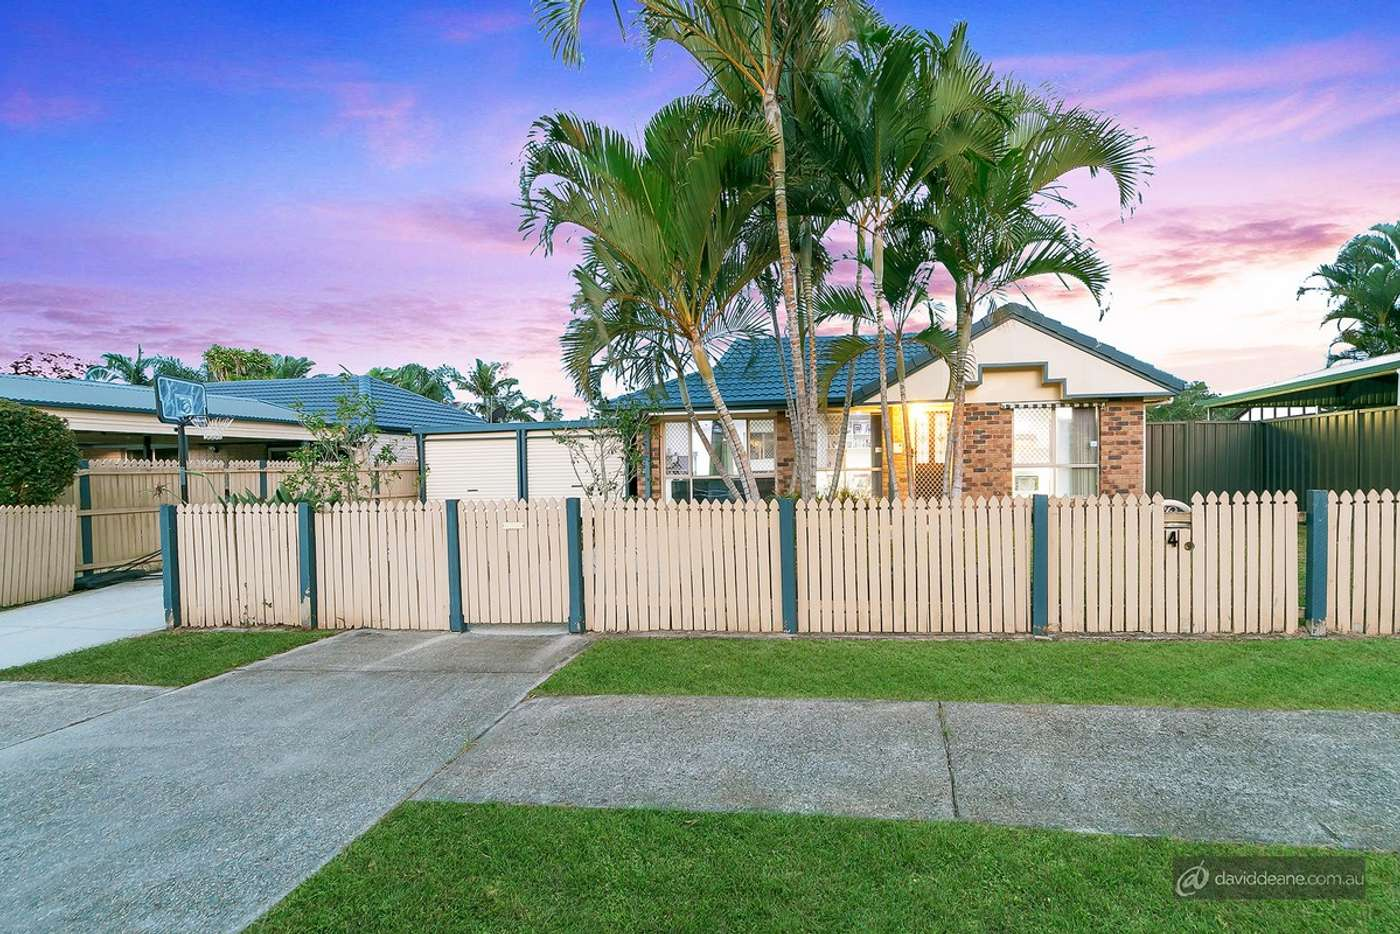 Main view of Homely house listing, 4 Marcia-Belle Place, Joyner QLD 4500